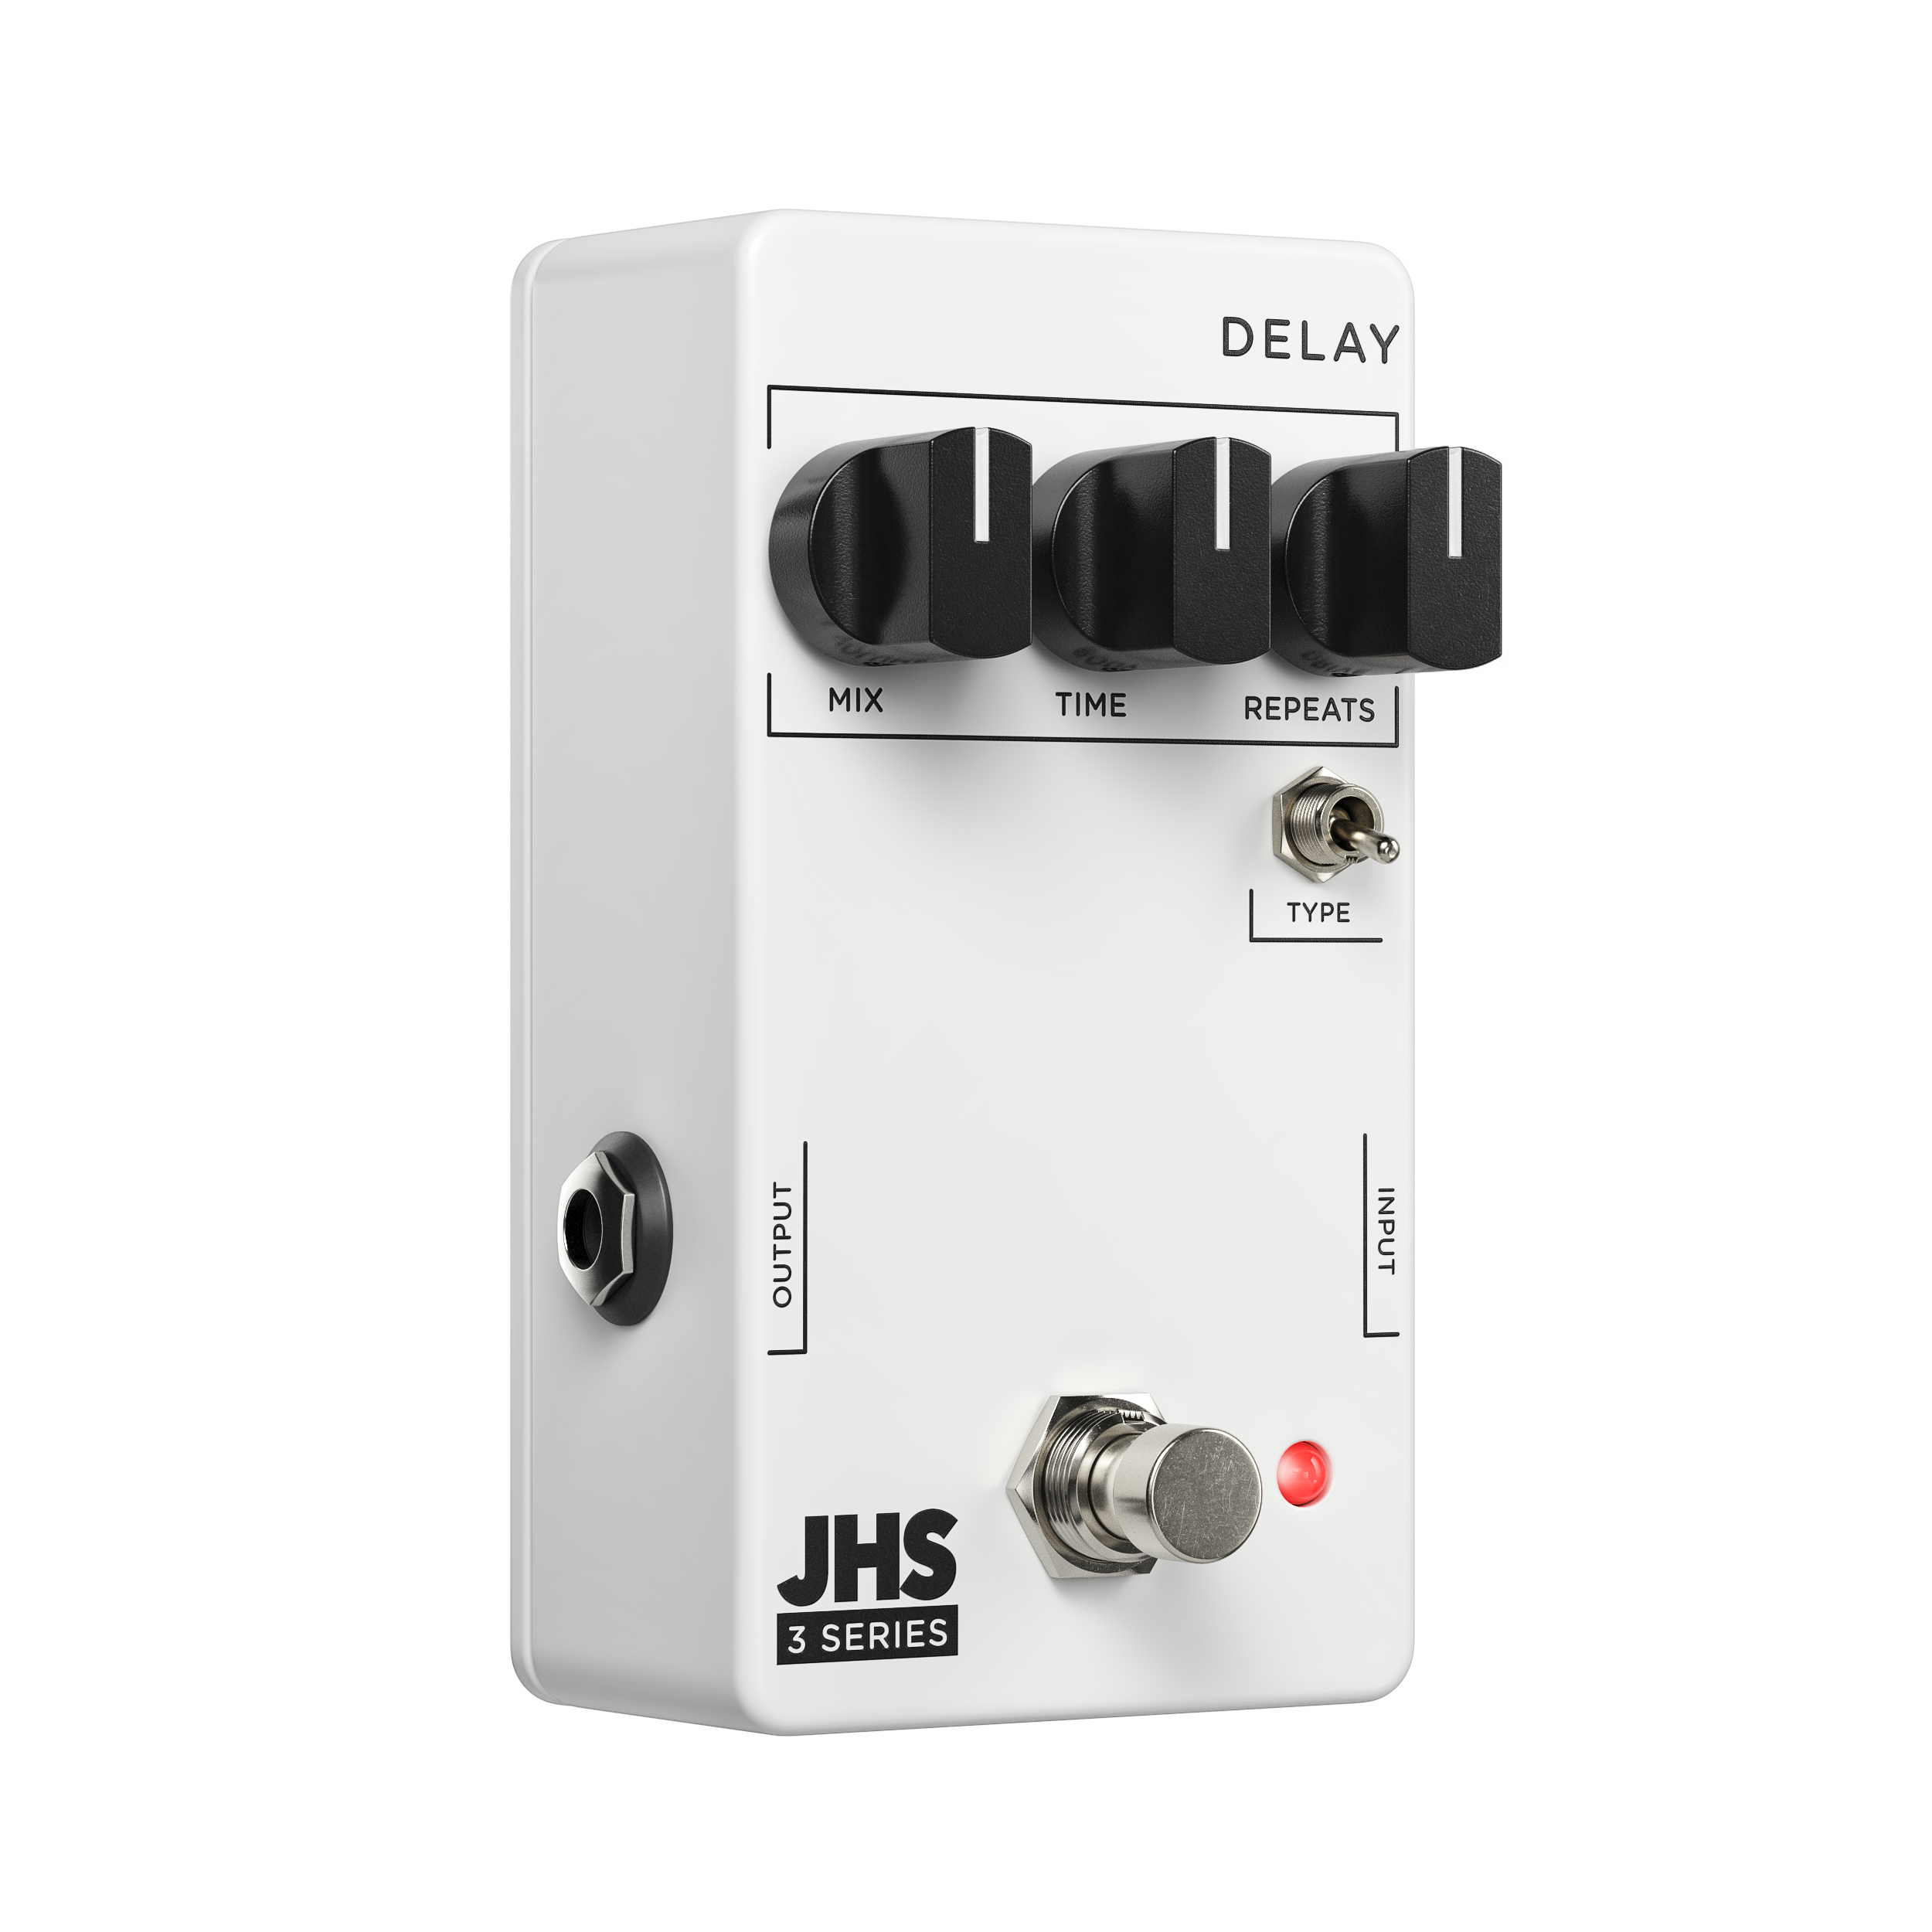 JHS-Pedals-3-Series-Delay-angle